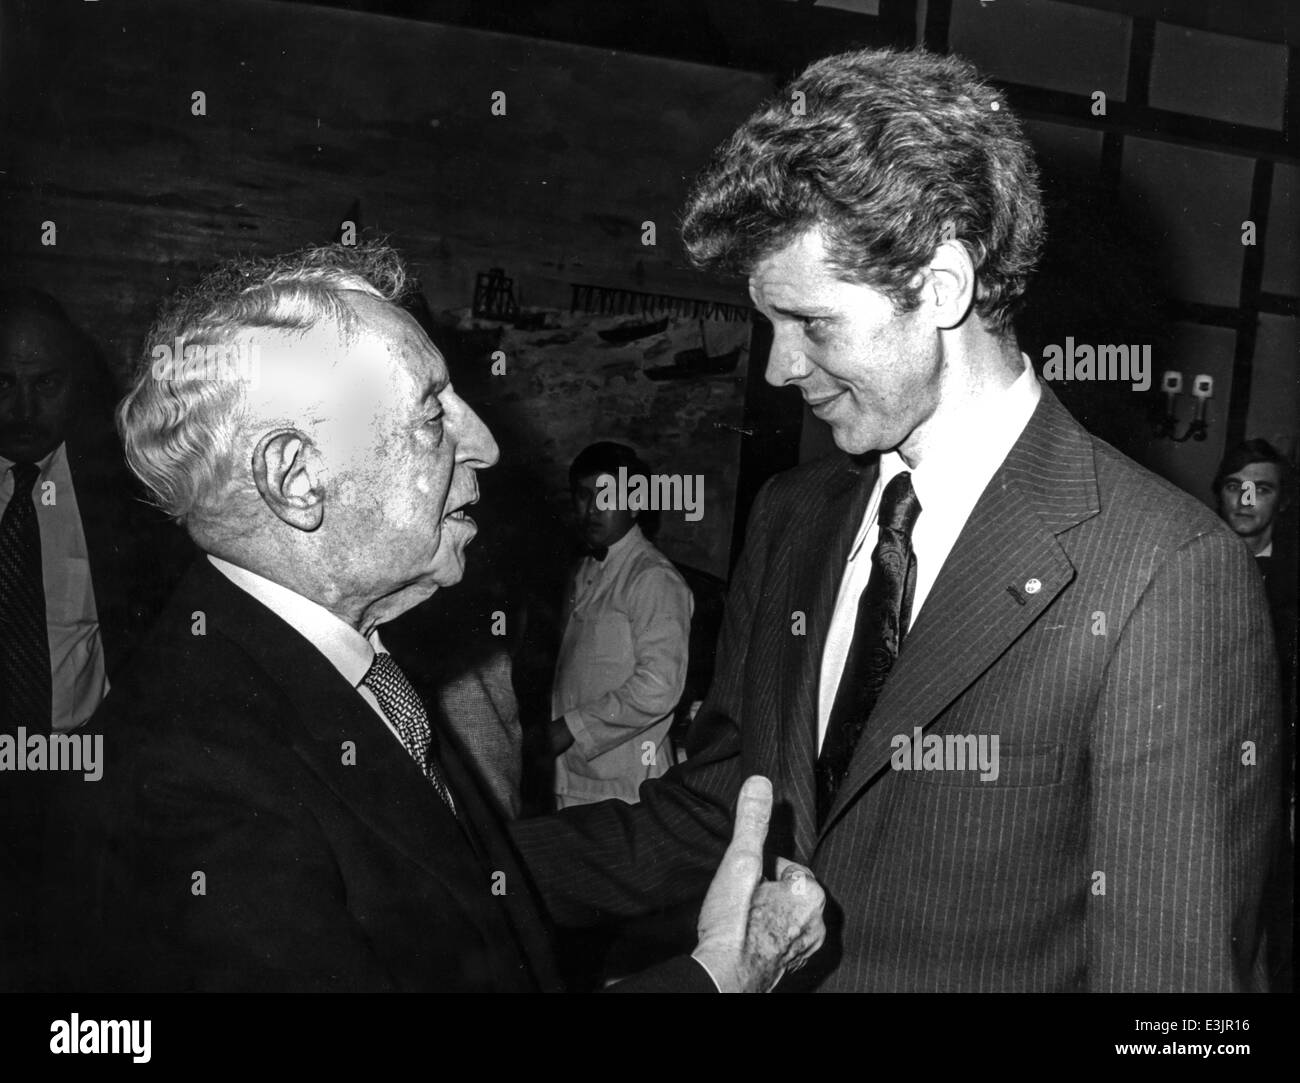 Van Cliburn - The Philadelphia Orchestra - Music Featured At The 1973 Inaugural Symphonic Concert